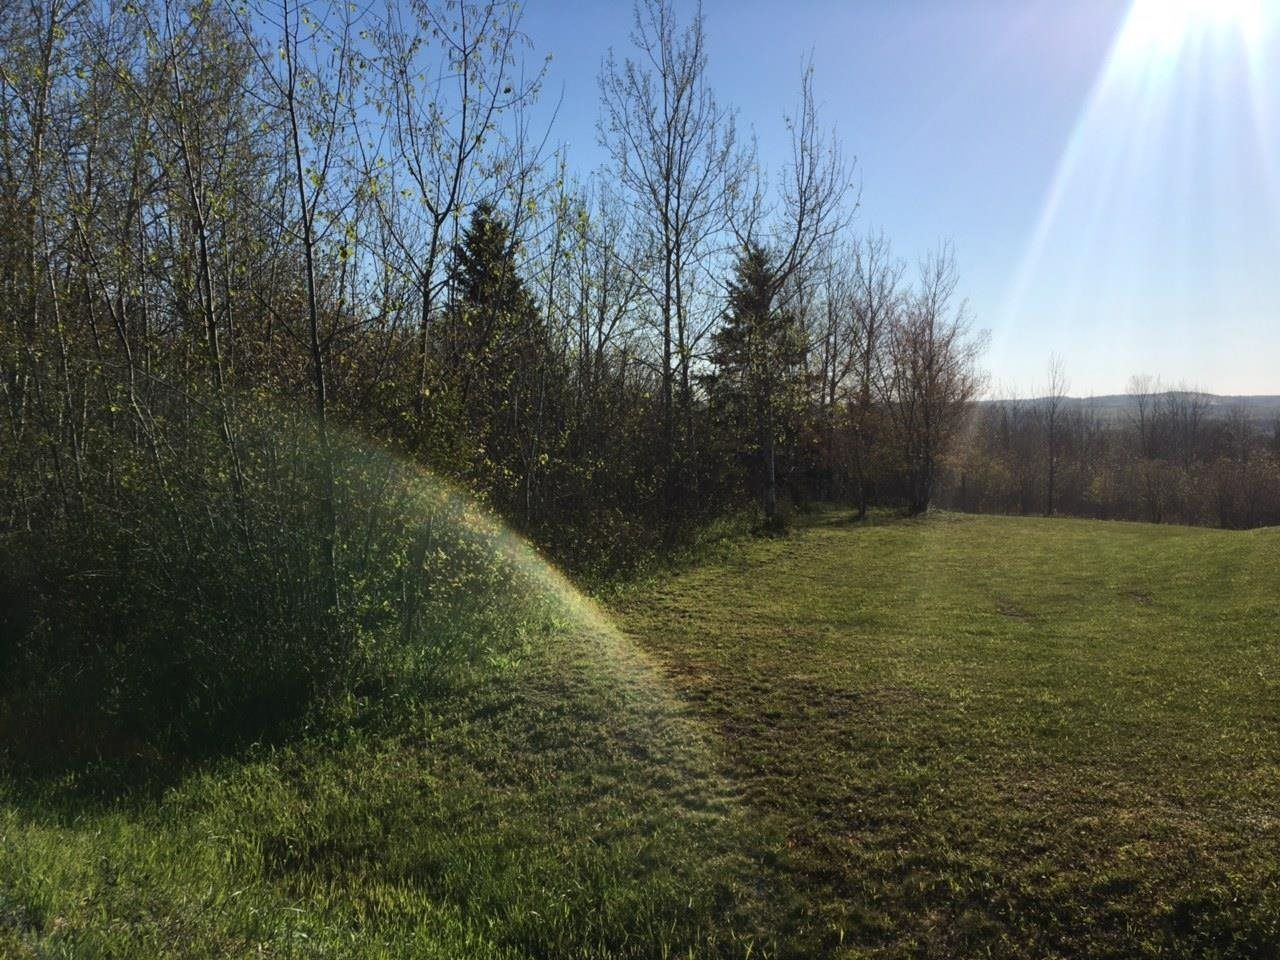 Main Photo: Lot 11-2 Douglas Road in Alma: 108-Rural Pictou County Vacant Land for sale (Northern Region)  : MLS®# 202113696